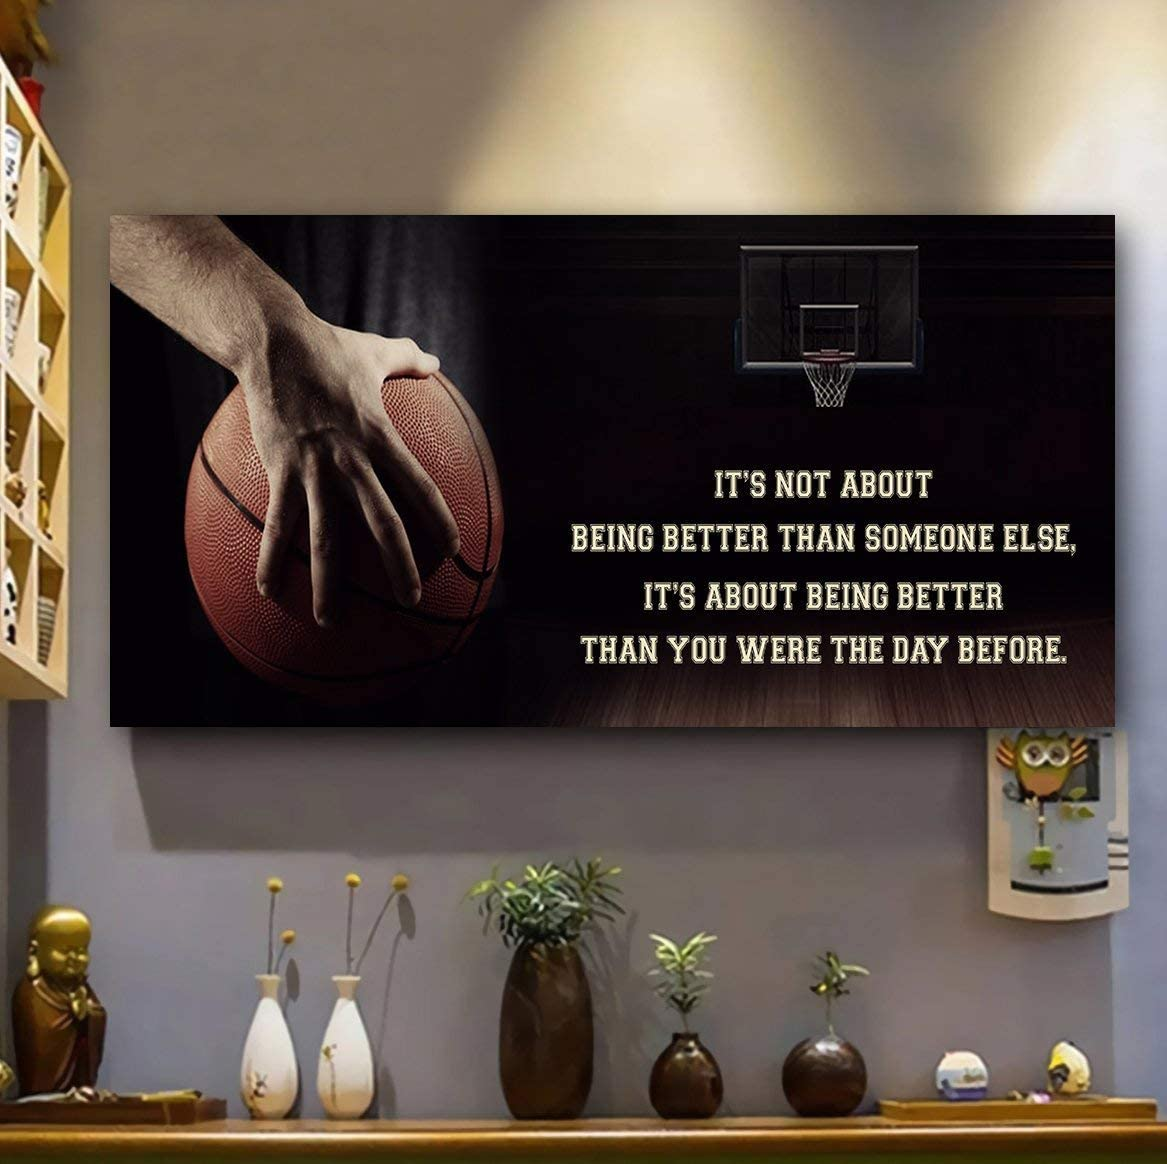 zart Sport Poster- Basketball Poster -Gift for Son- It's not About Being Better Than Someone Else- Gift for Men-Wall Decor-Decorative Home-Art Print Size 11''x22'', 24''x48'', No Frame.